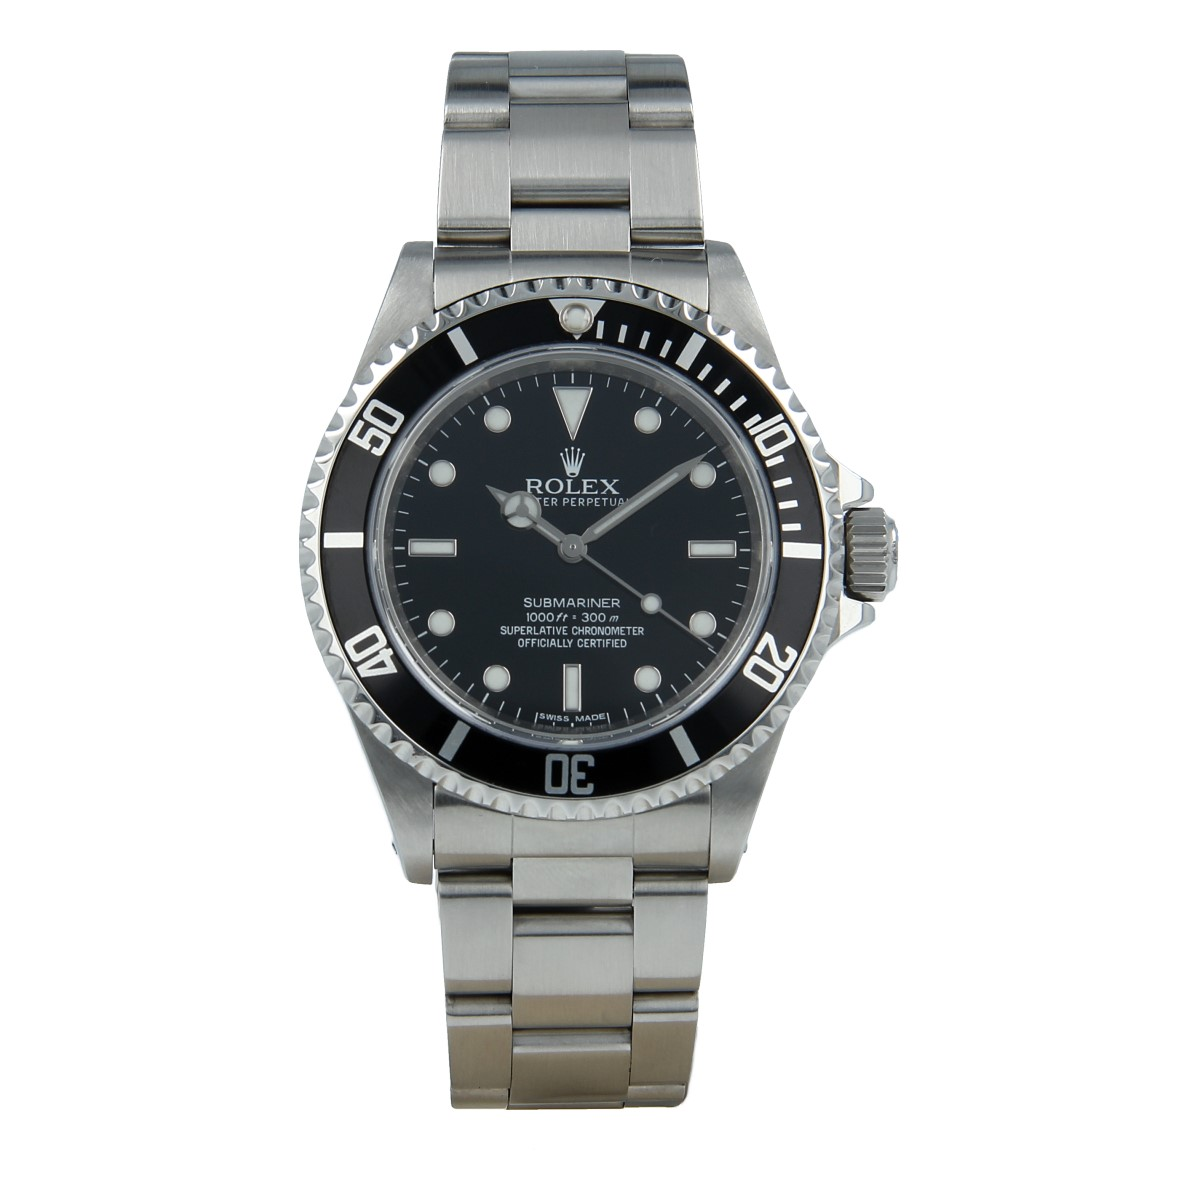 Rolex Submariner No Date 14060M RRR *Full Set* | Buy second-hand Rolex watch